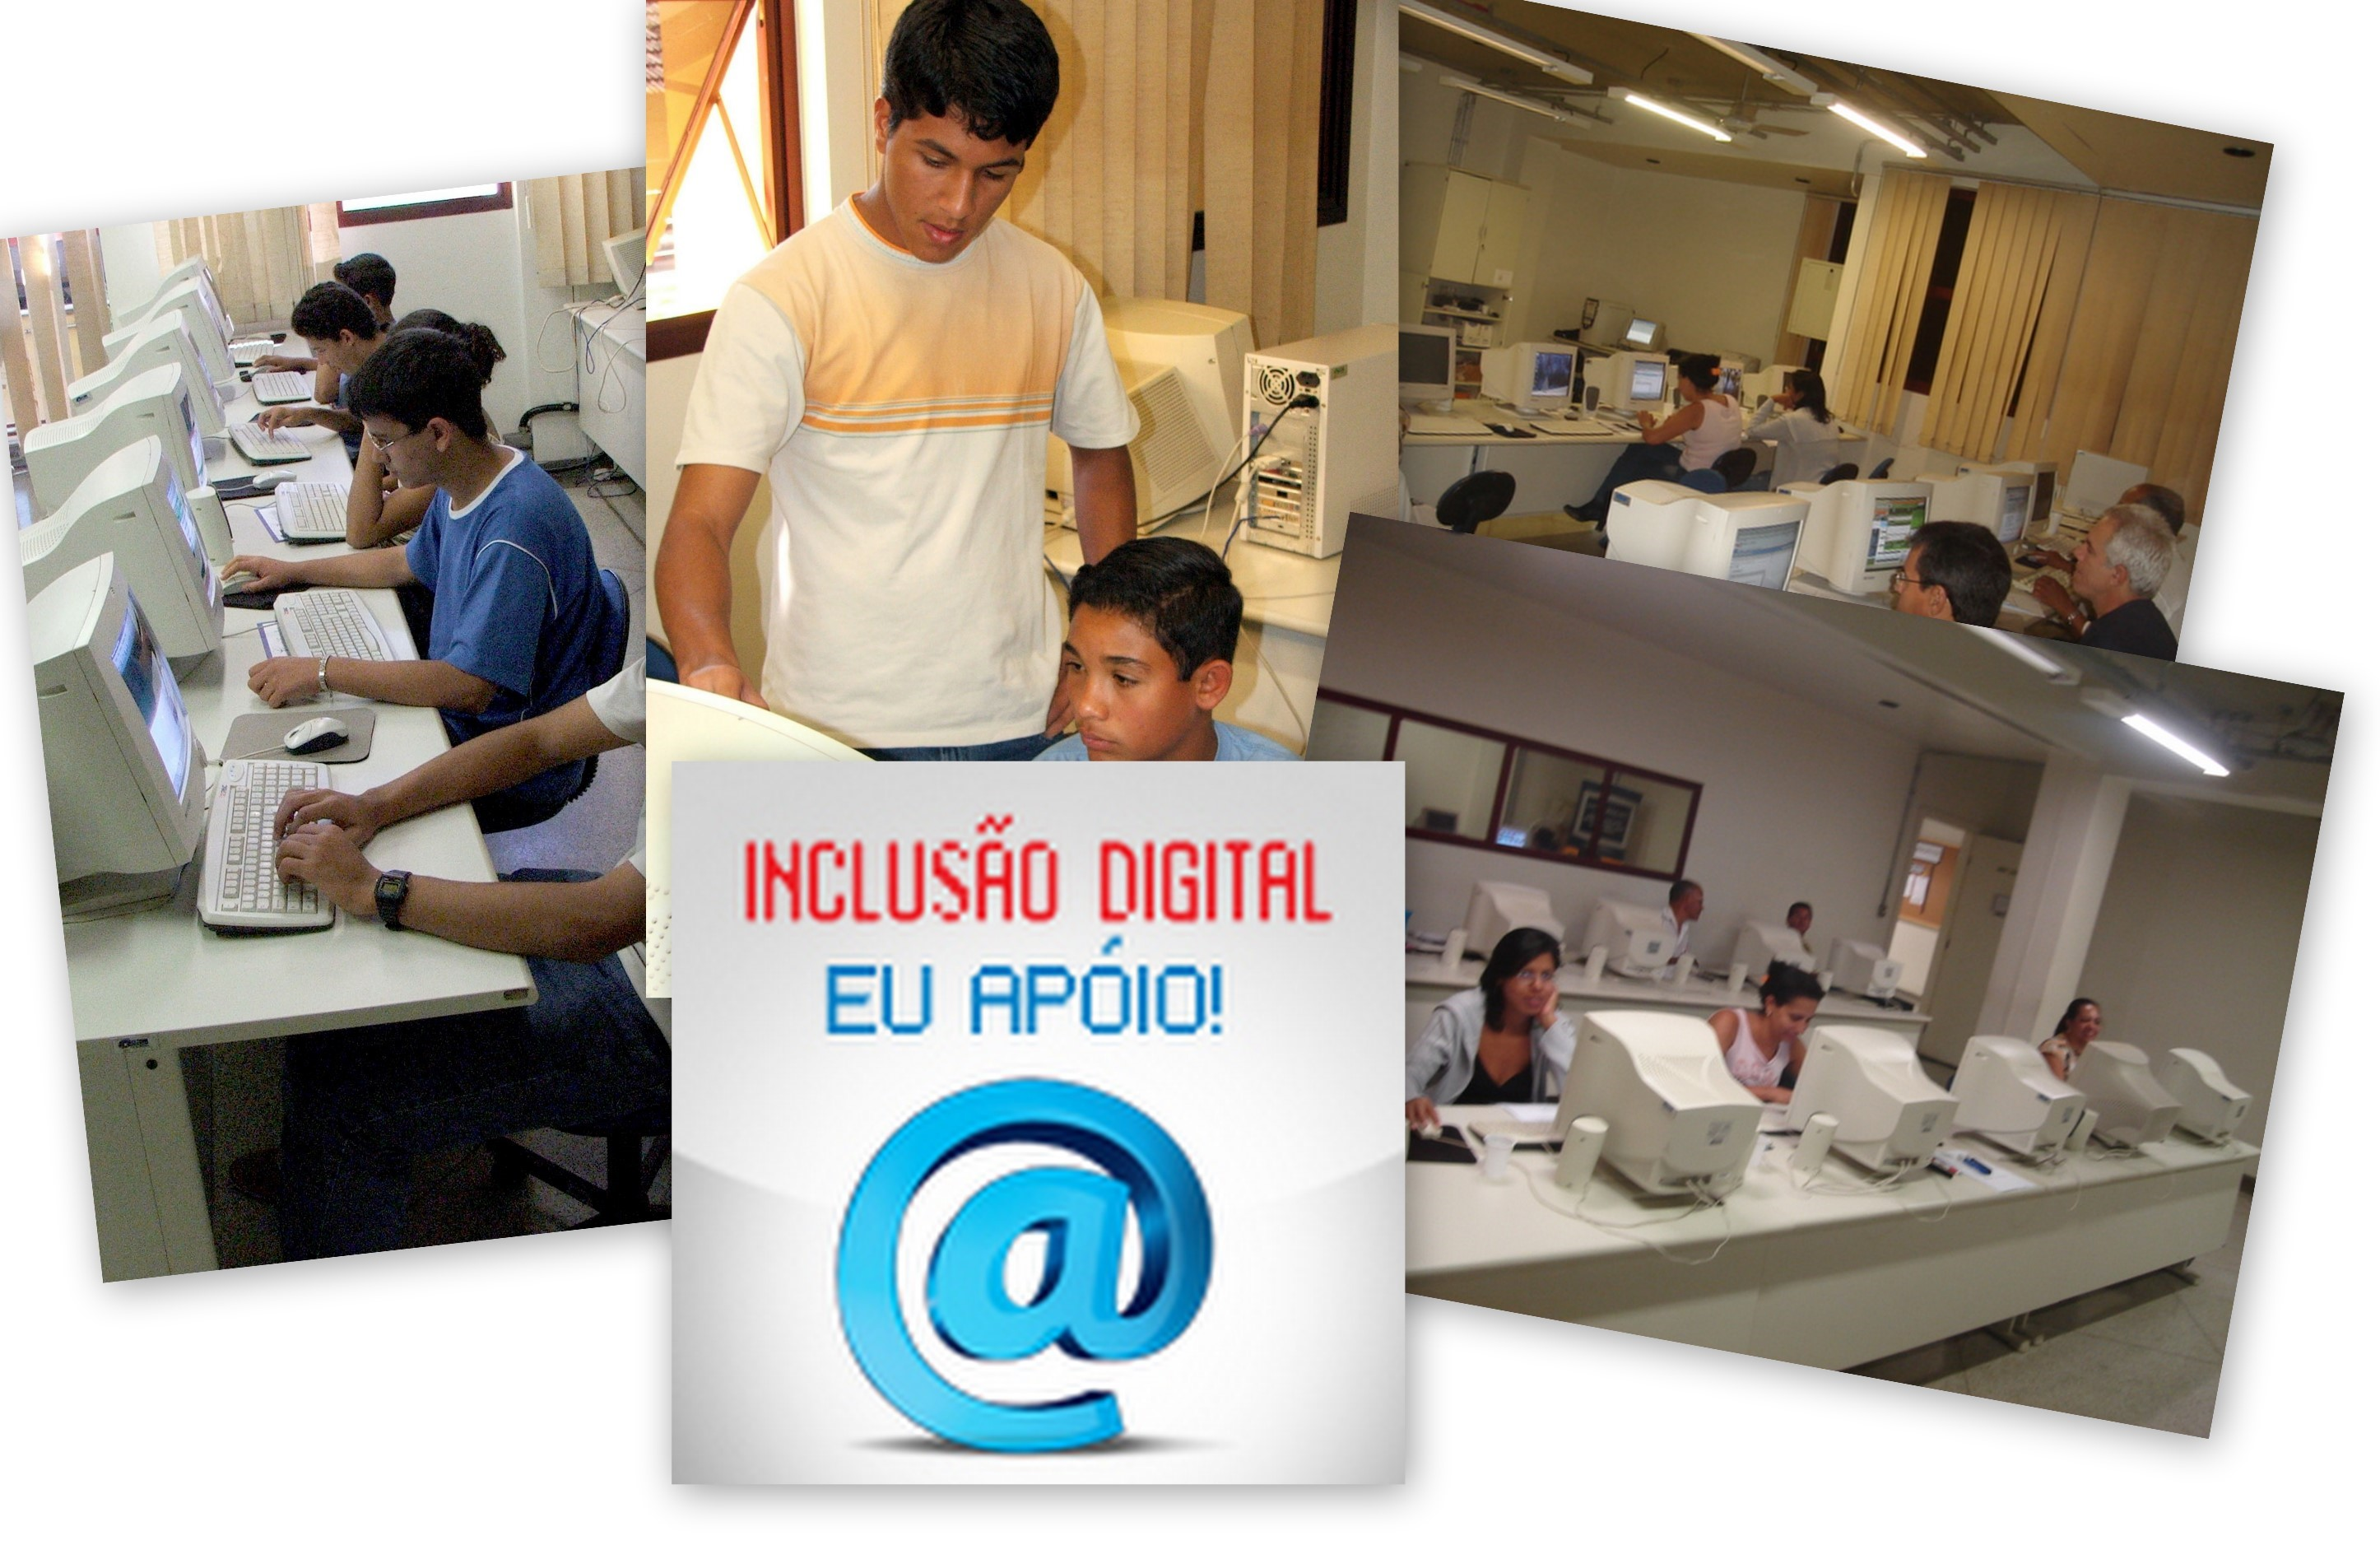 Incluso Digital Eu Apio!